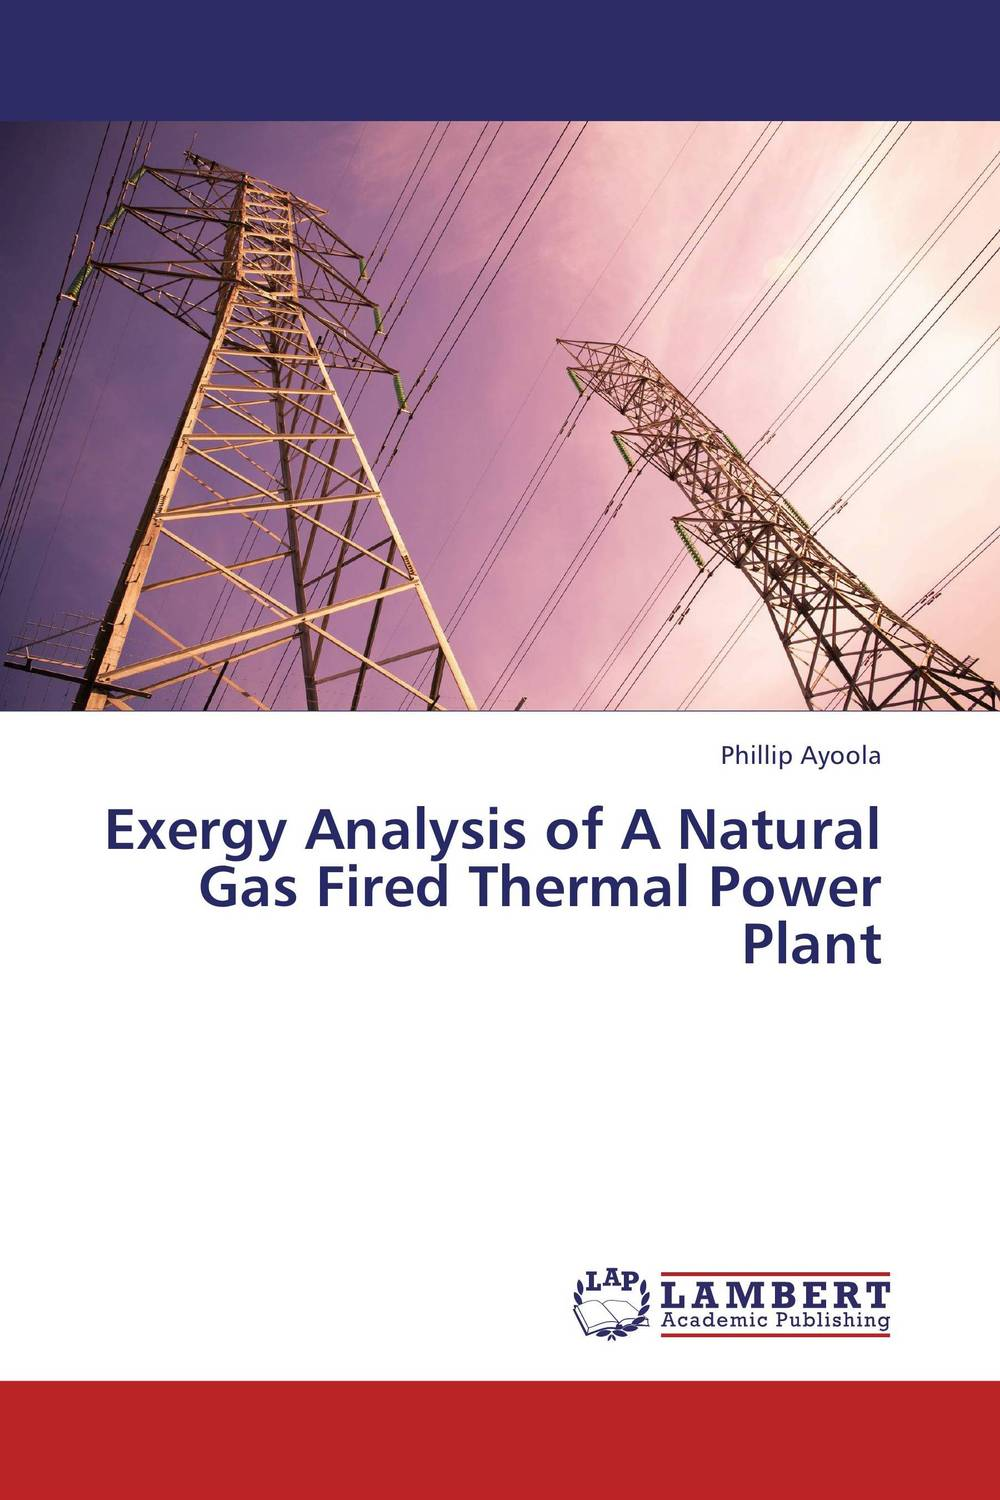 Exergy Analysis of A Natural Gas Fired Thermal Power Plant practical approach to exergy and thermoeconomic analyses of industrial processes